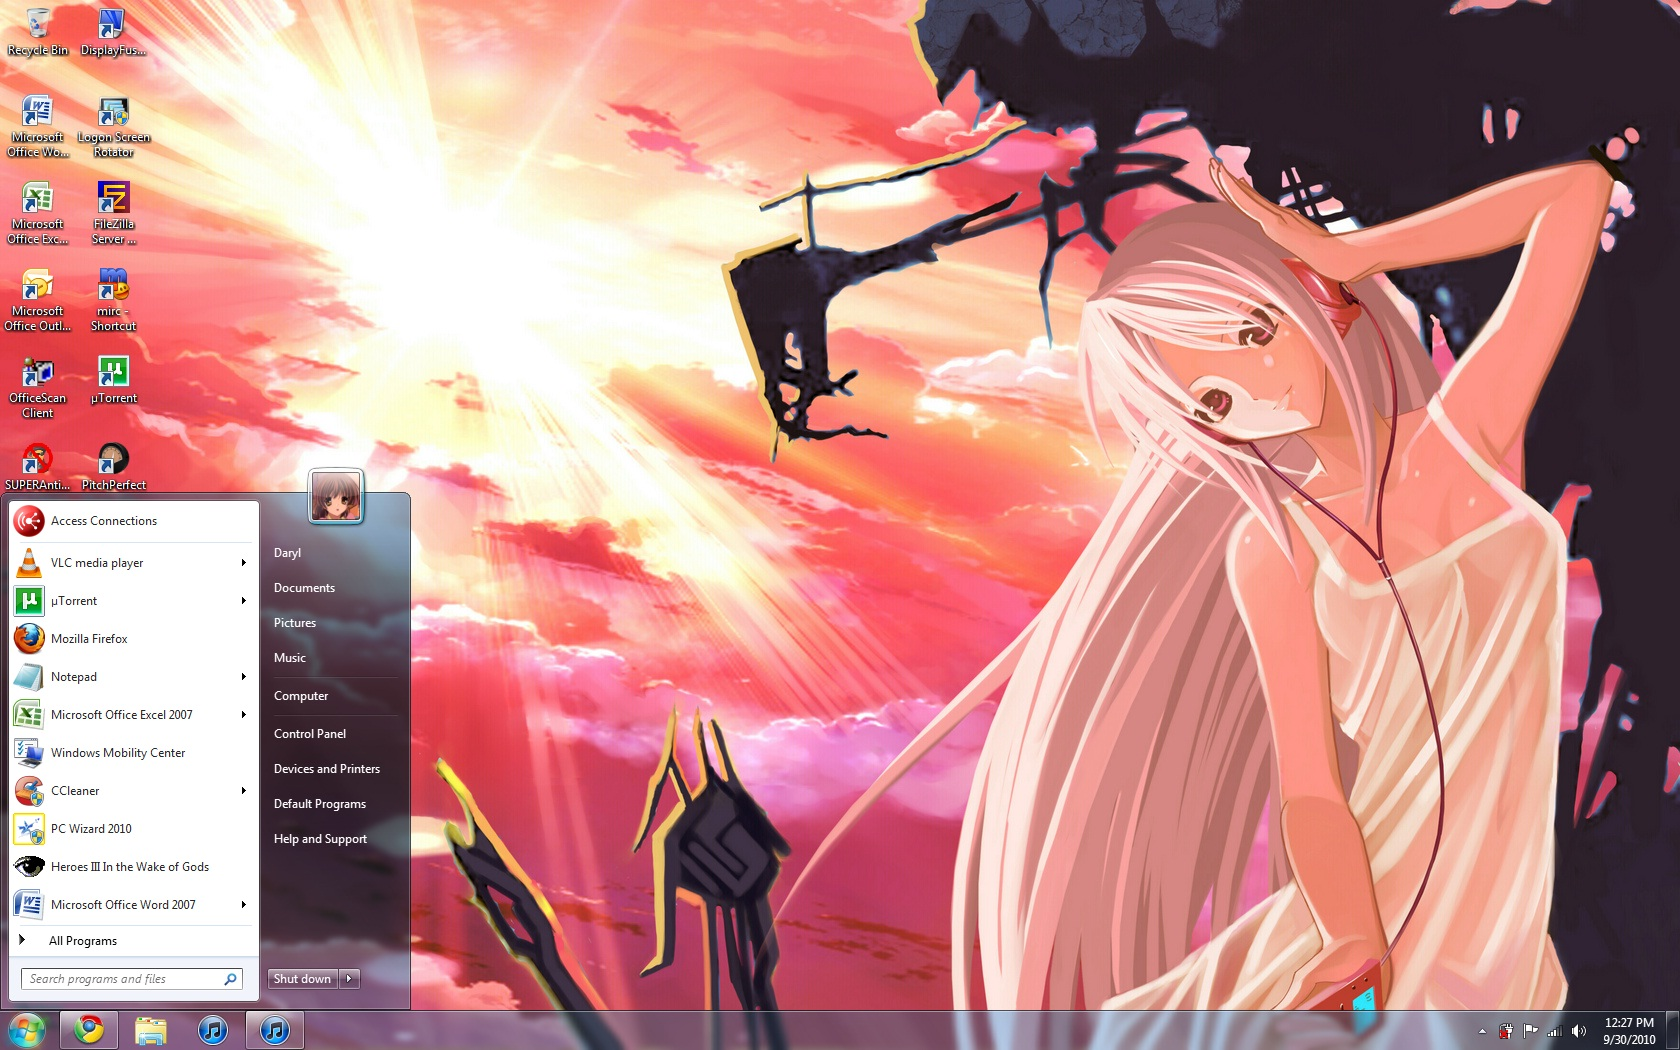 Windows 7 Themes Clannad Muramasa The Demon Blade En